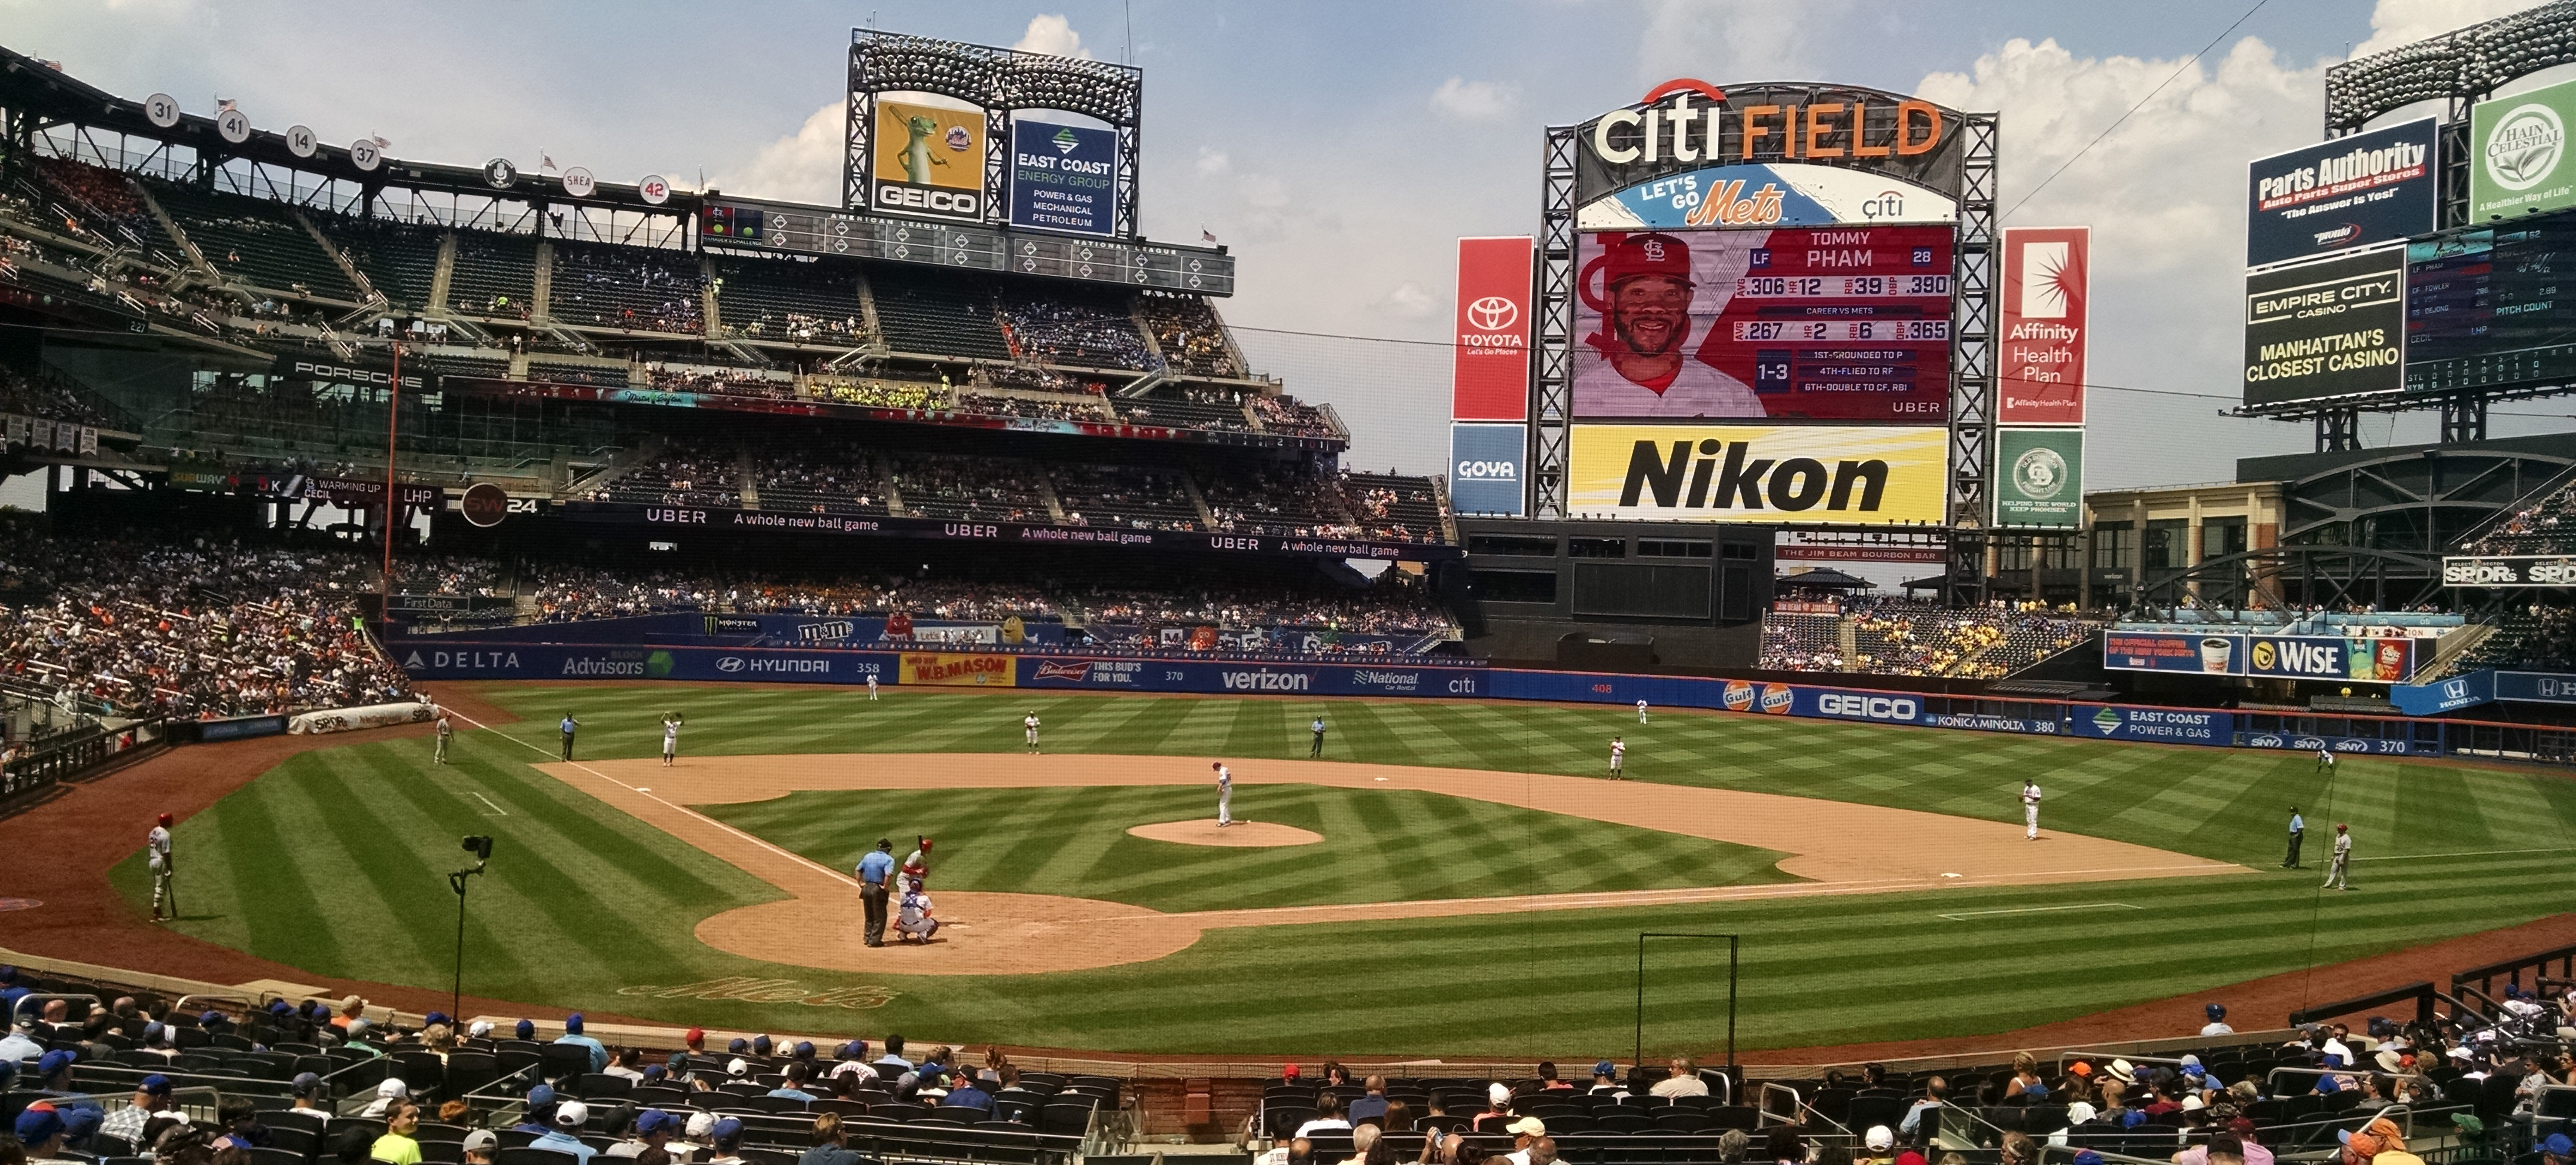 The New York Mets play against the St. Louis Cardinals at Citi Field in New York City on July 20, 2017. (Kenneth Best/UConn Photo)